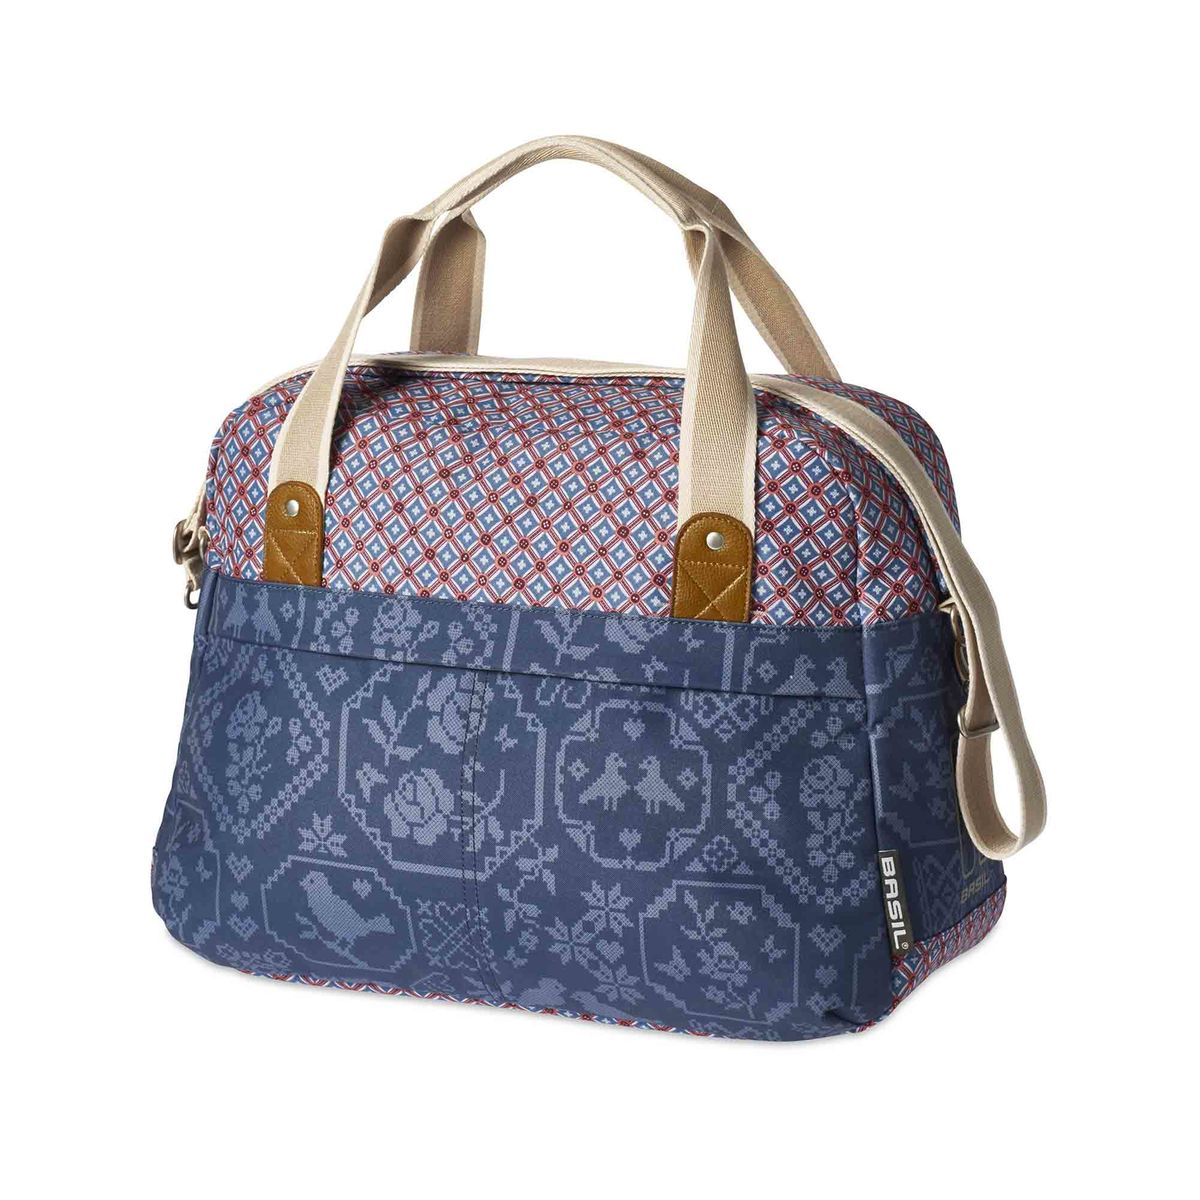 BOHEME CARRY ALL BAG Damen-Fahrradtasche